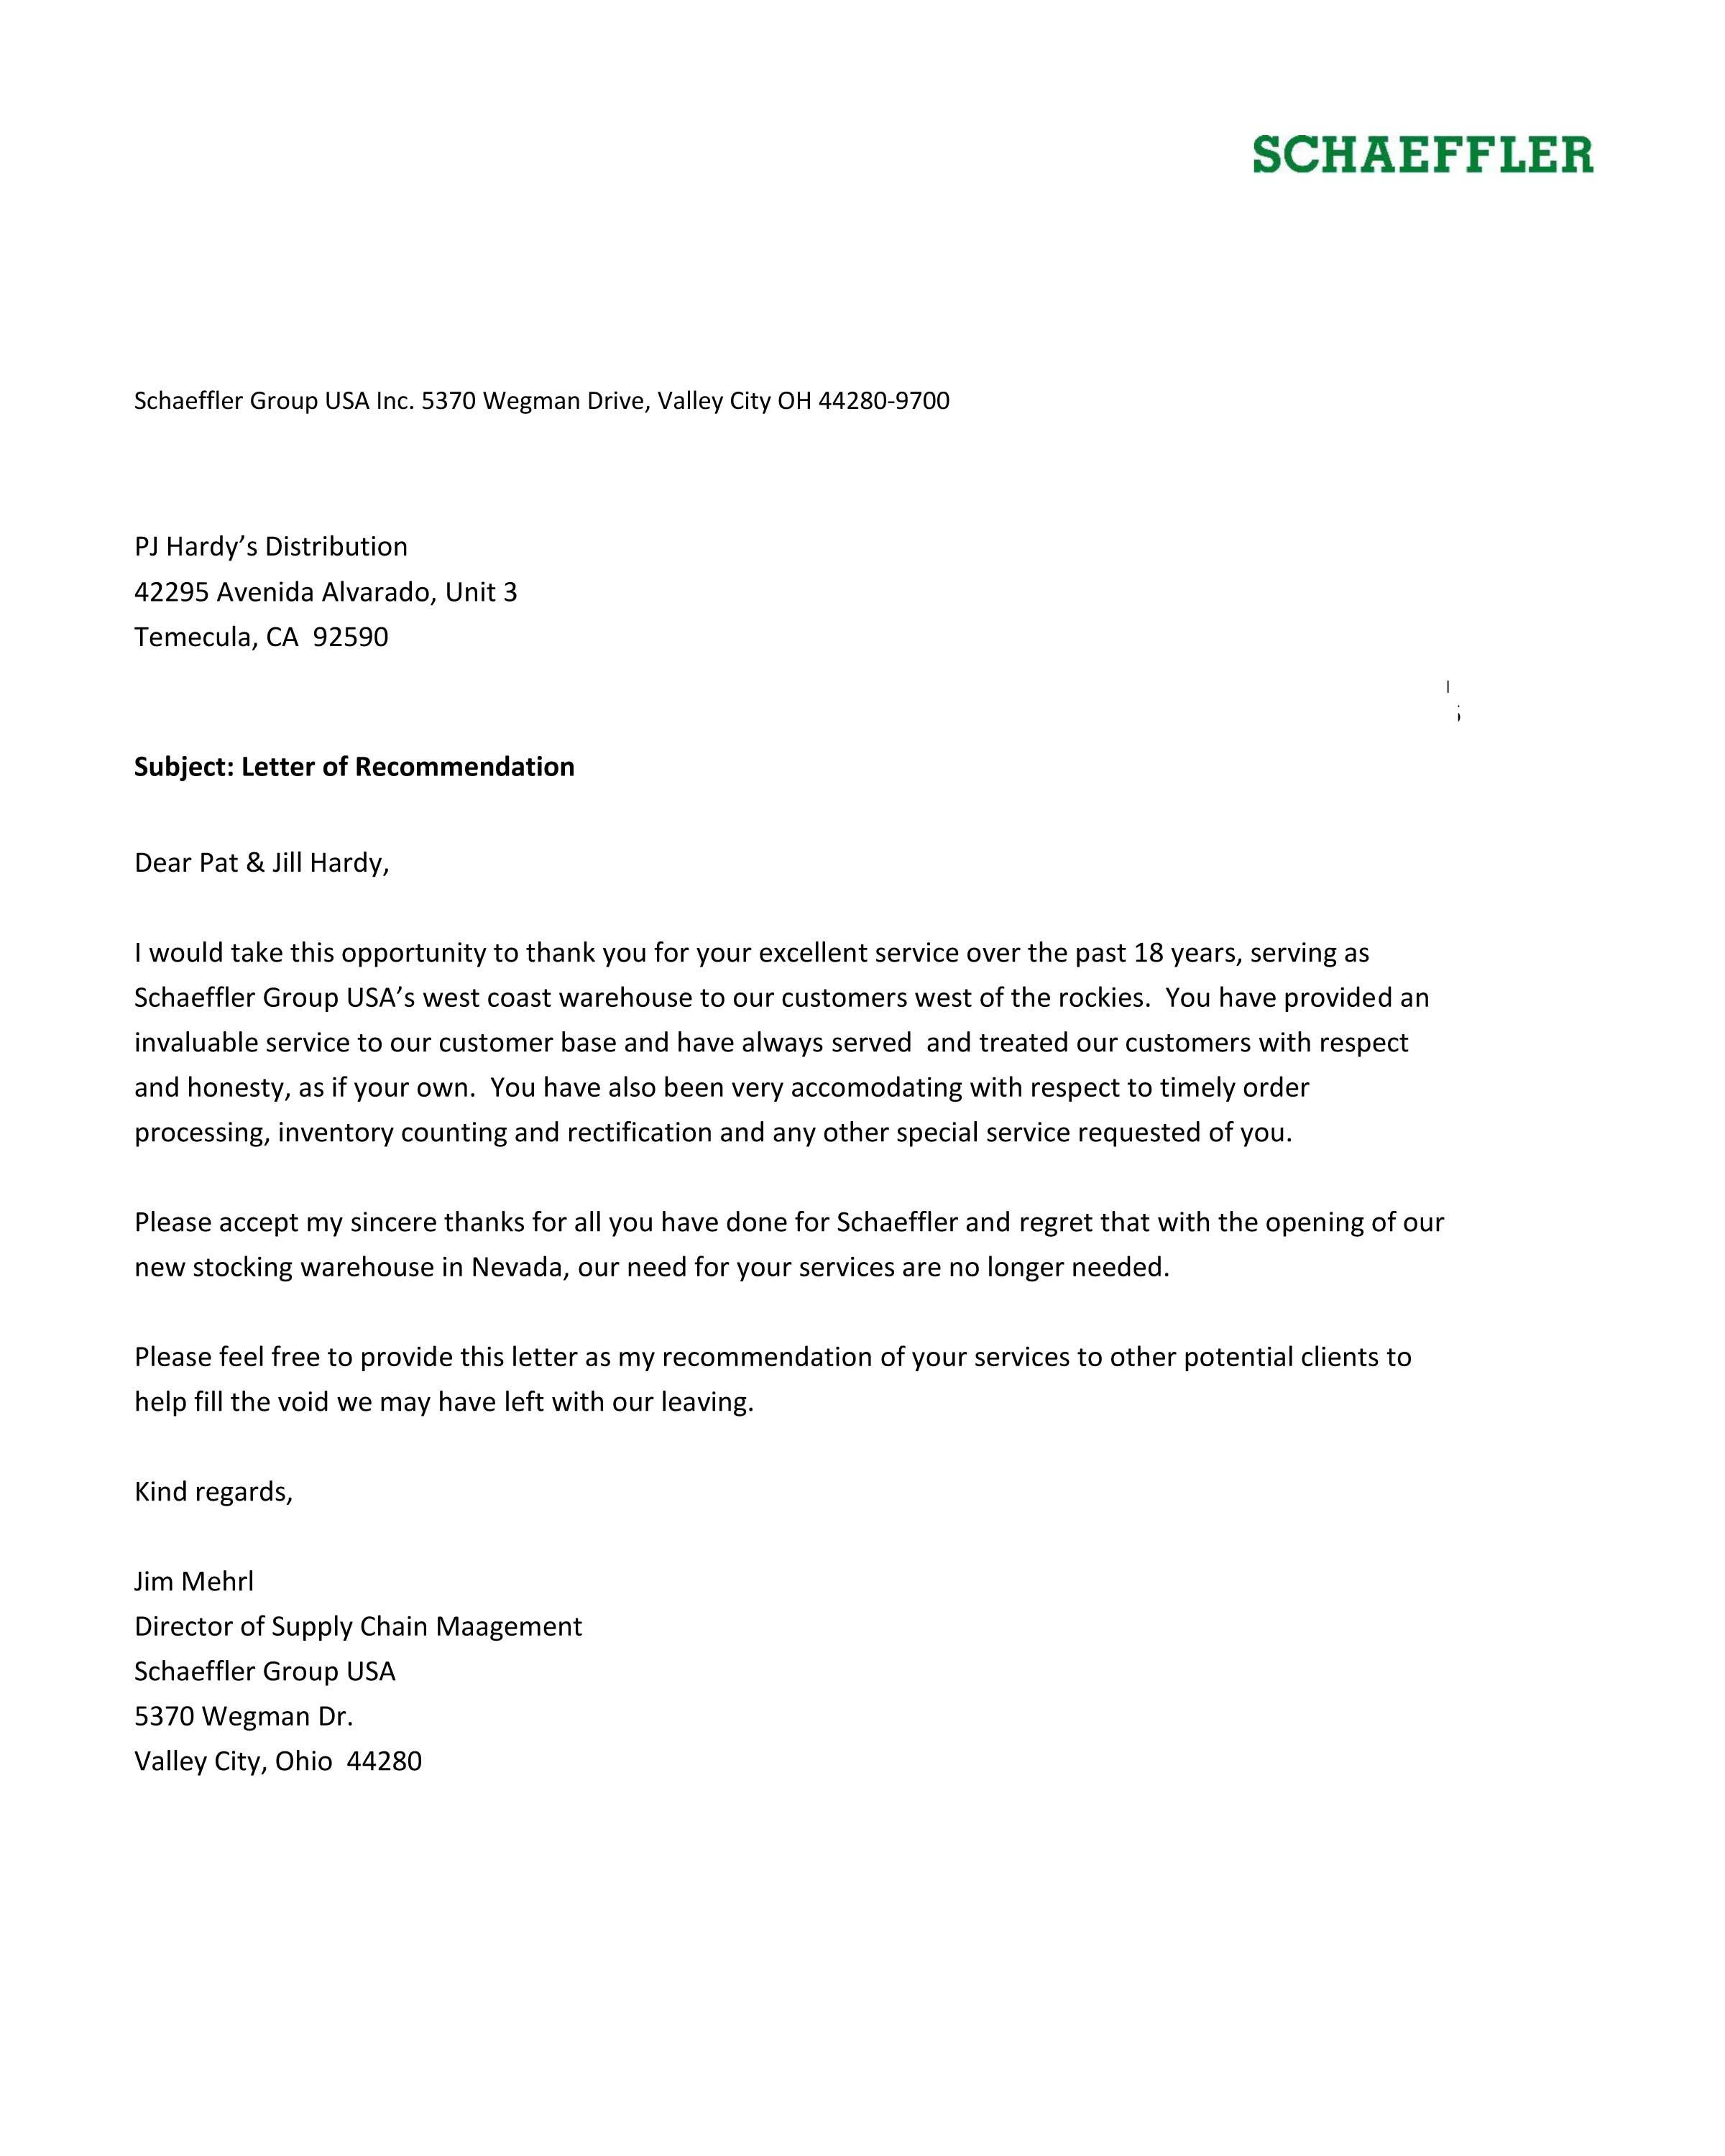 Letter of Recommendation - PJ Hardy's Distribution